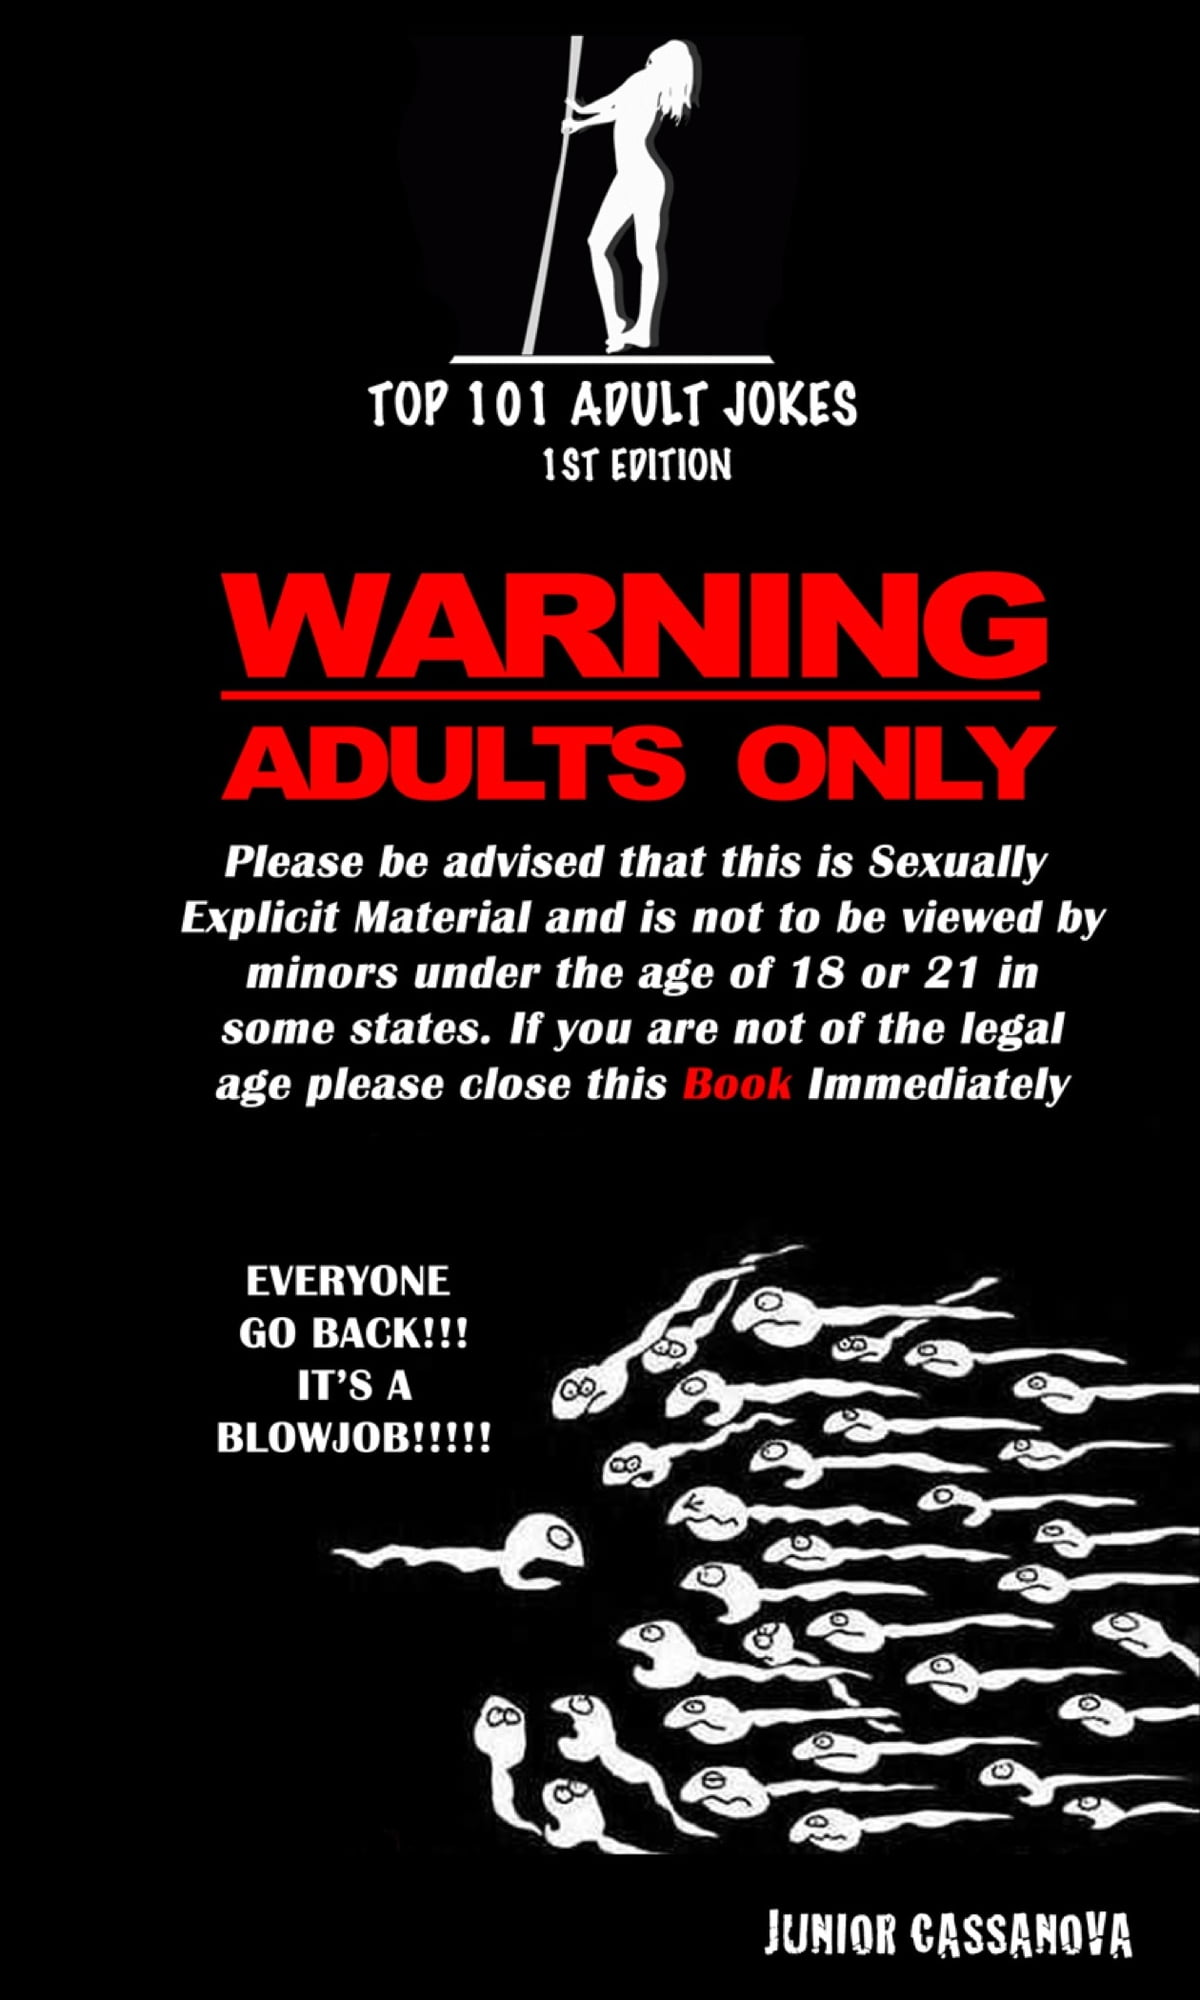 Top 101 Adult Jokes eBook by Junior Cassanova | Rakuten Kobo